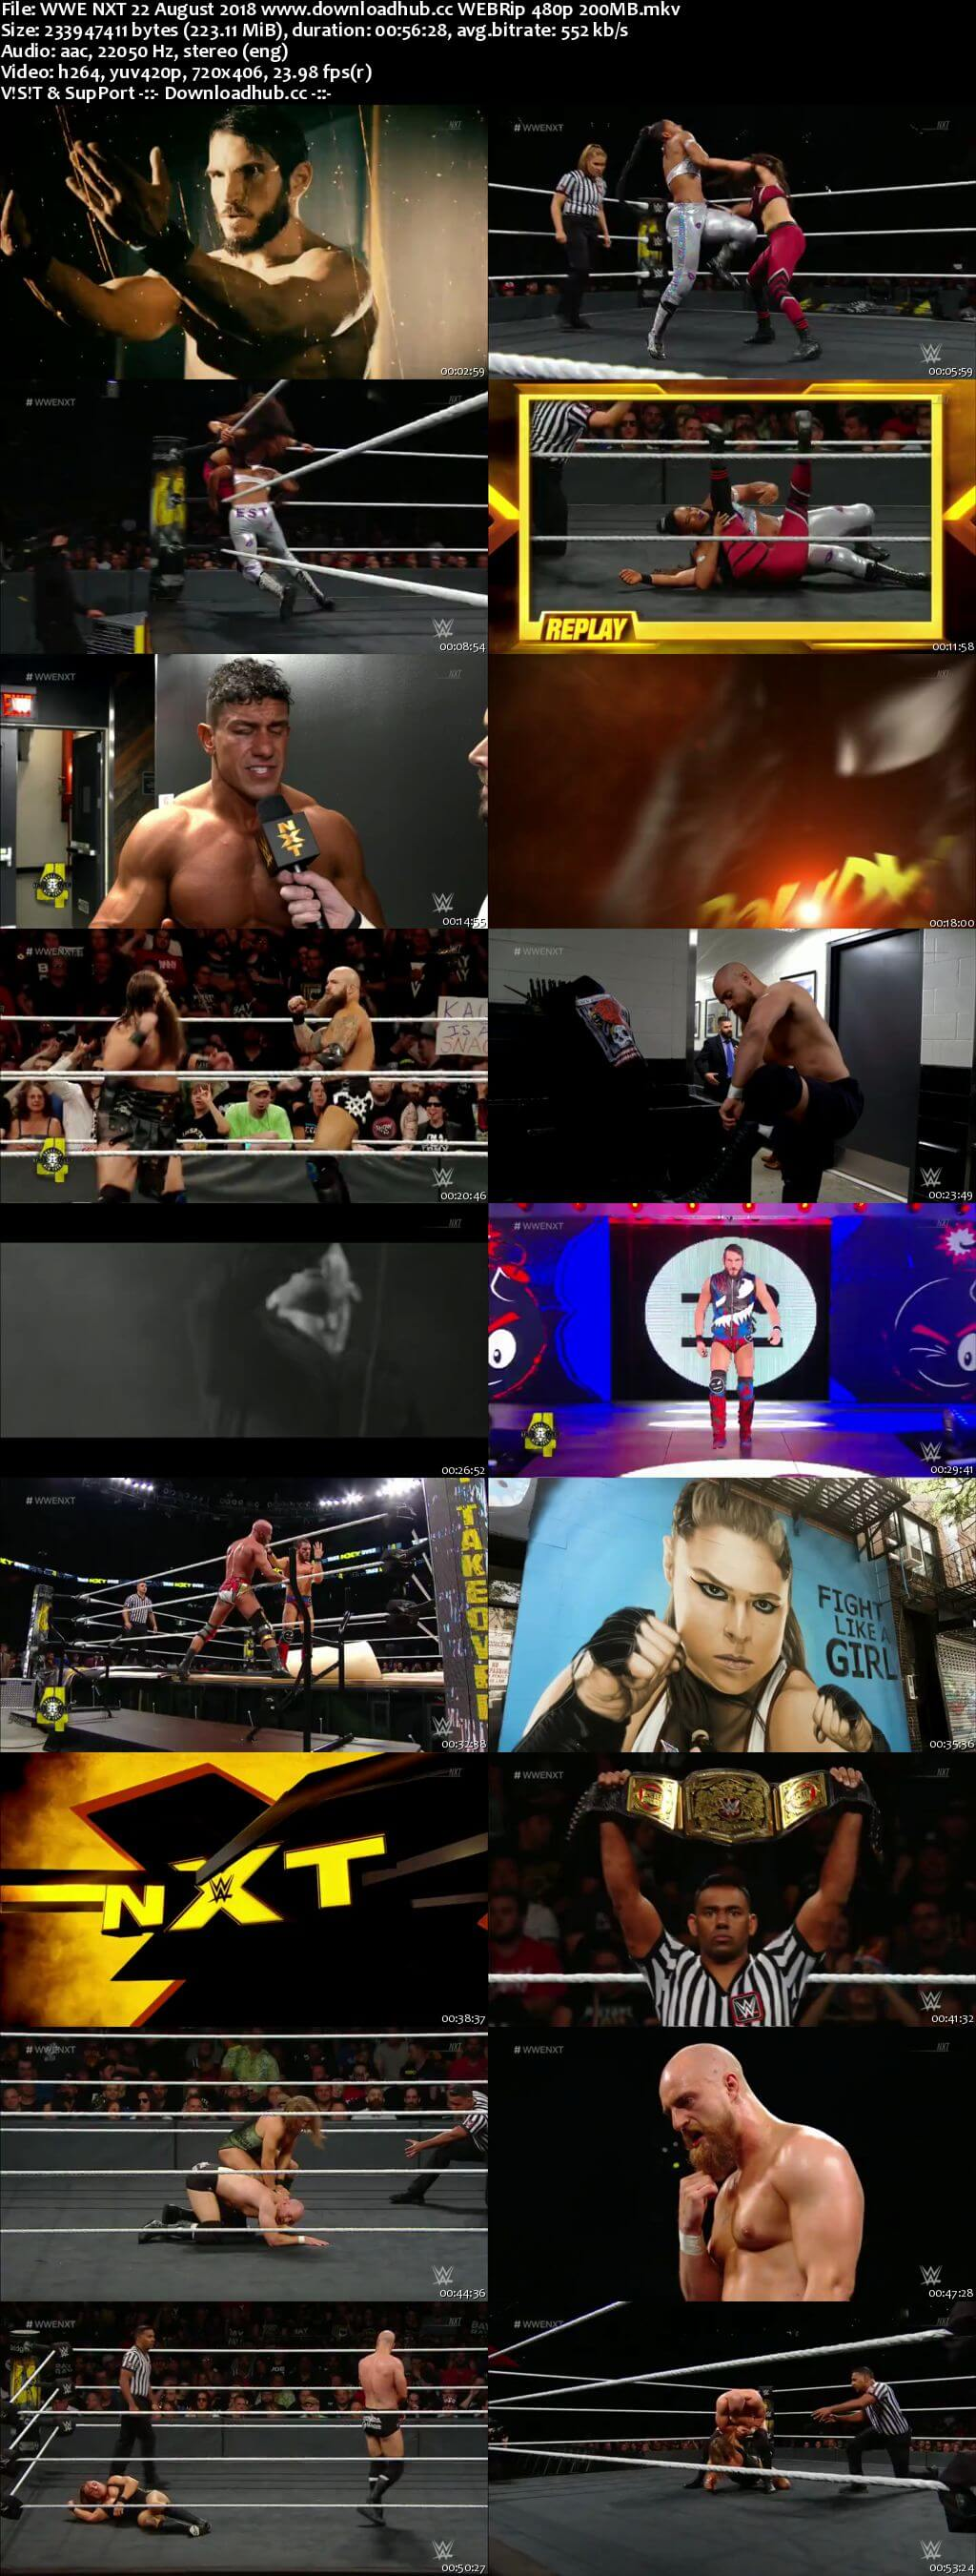 WWE NXT 22 August 2018 480p HDTV Download